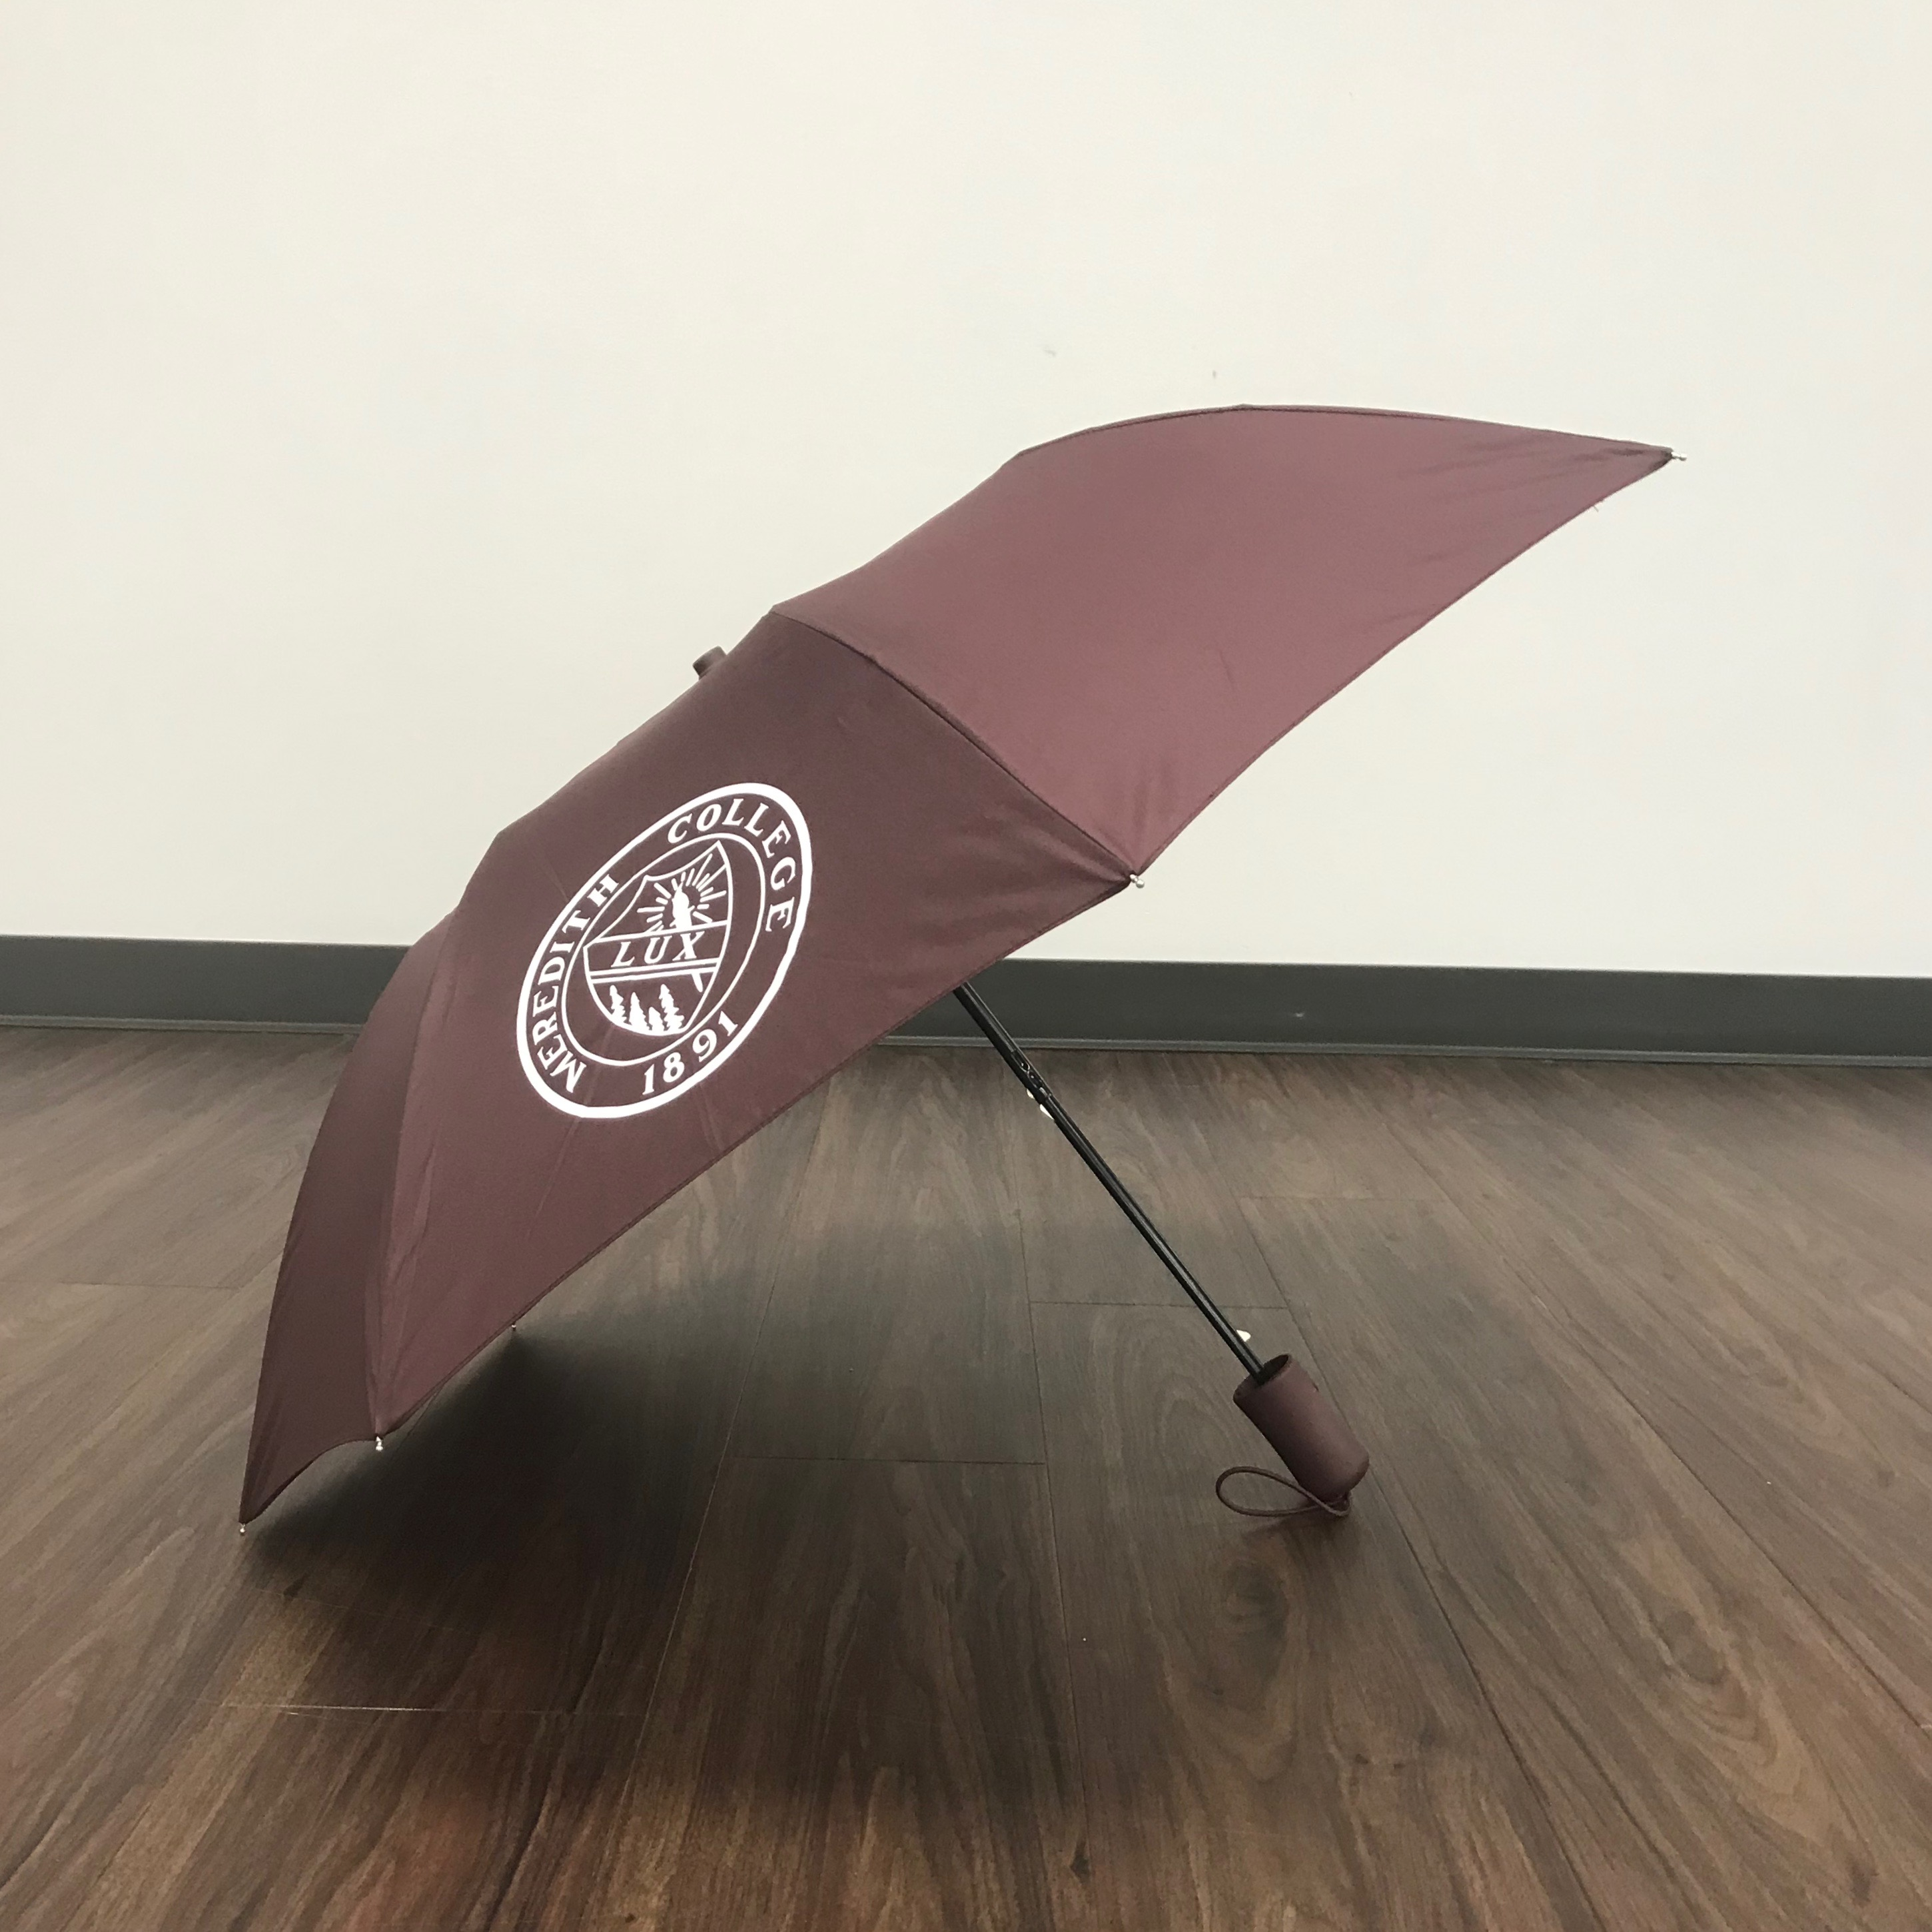 Image for the Deluxe Maroon Folding Umbrella w/ Lux product